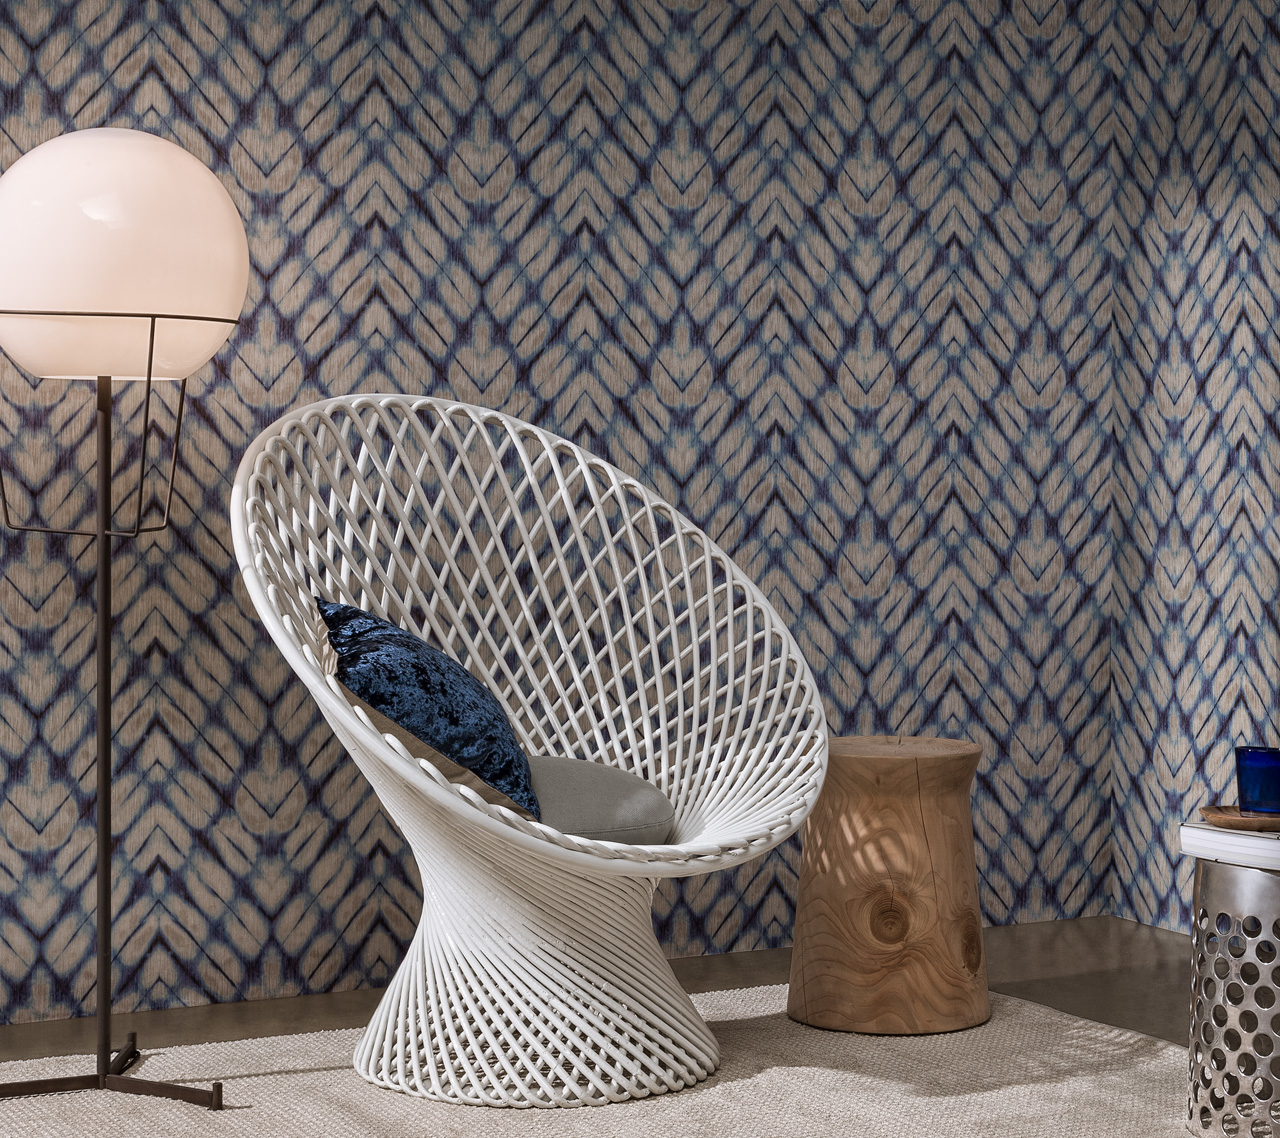 Giardini Wallcoverings - Ph Fiorini 1 Web.jpg